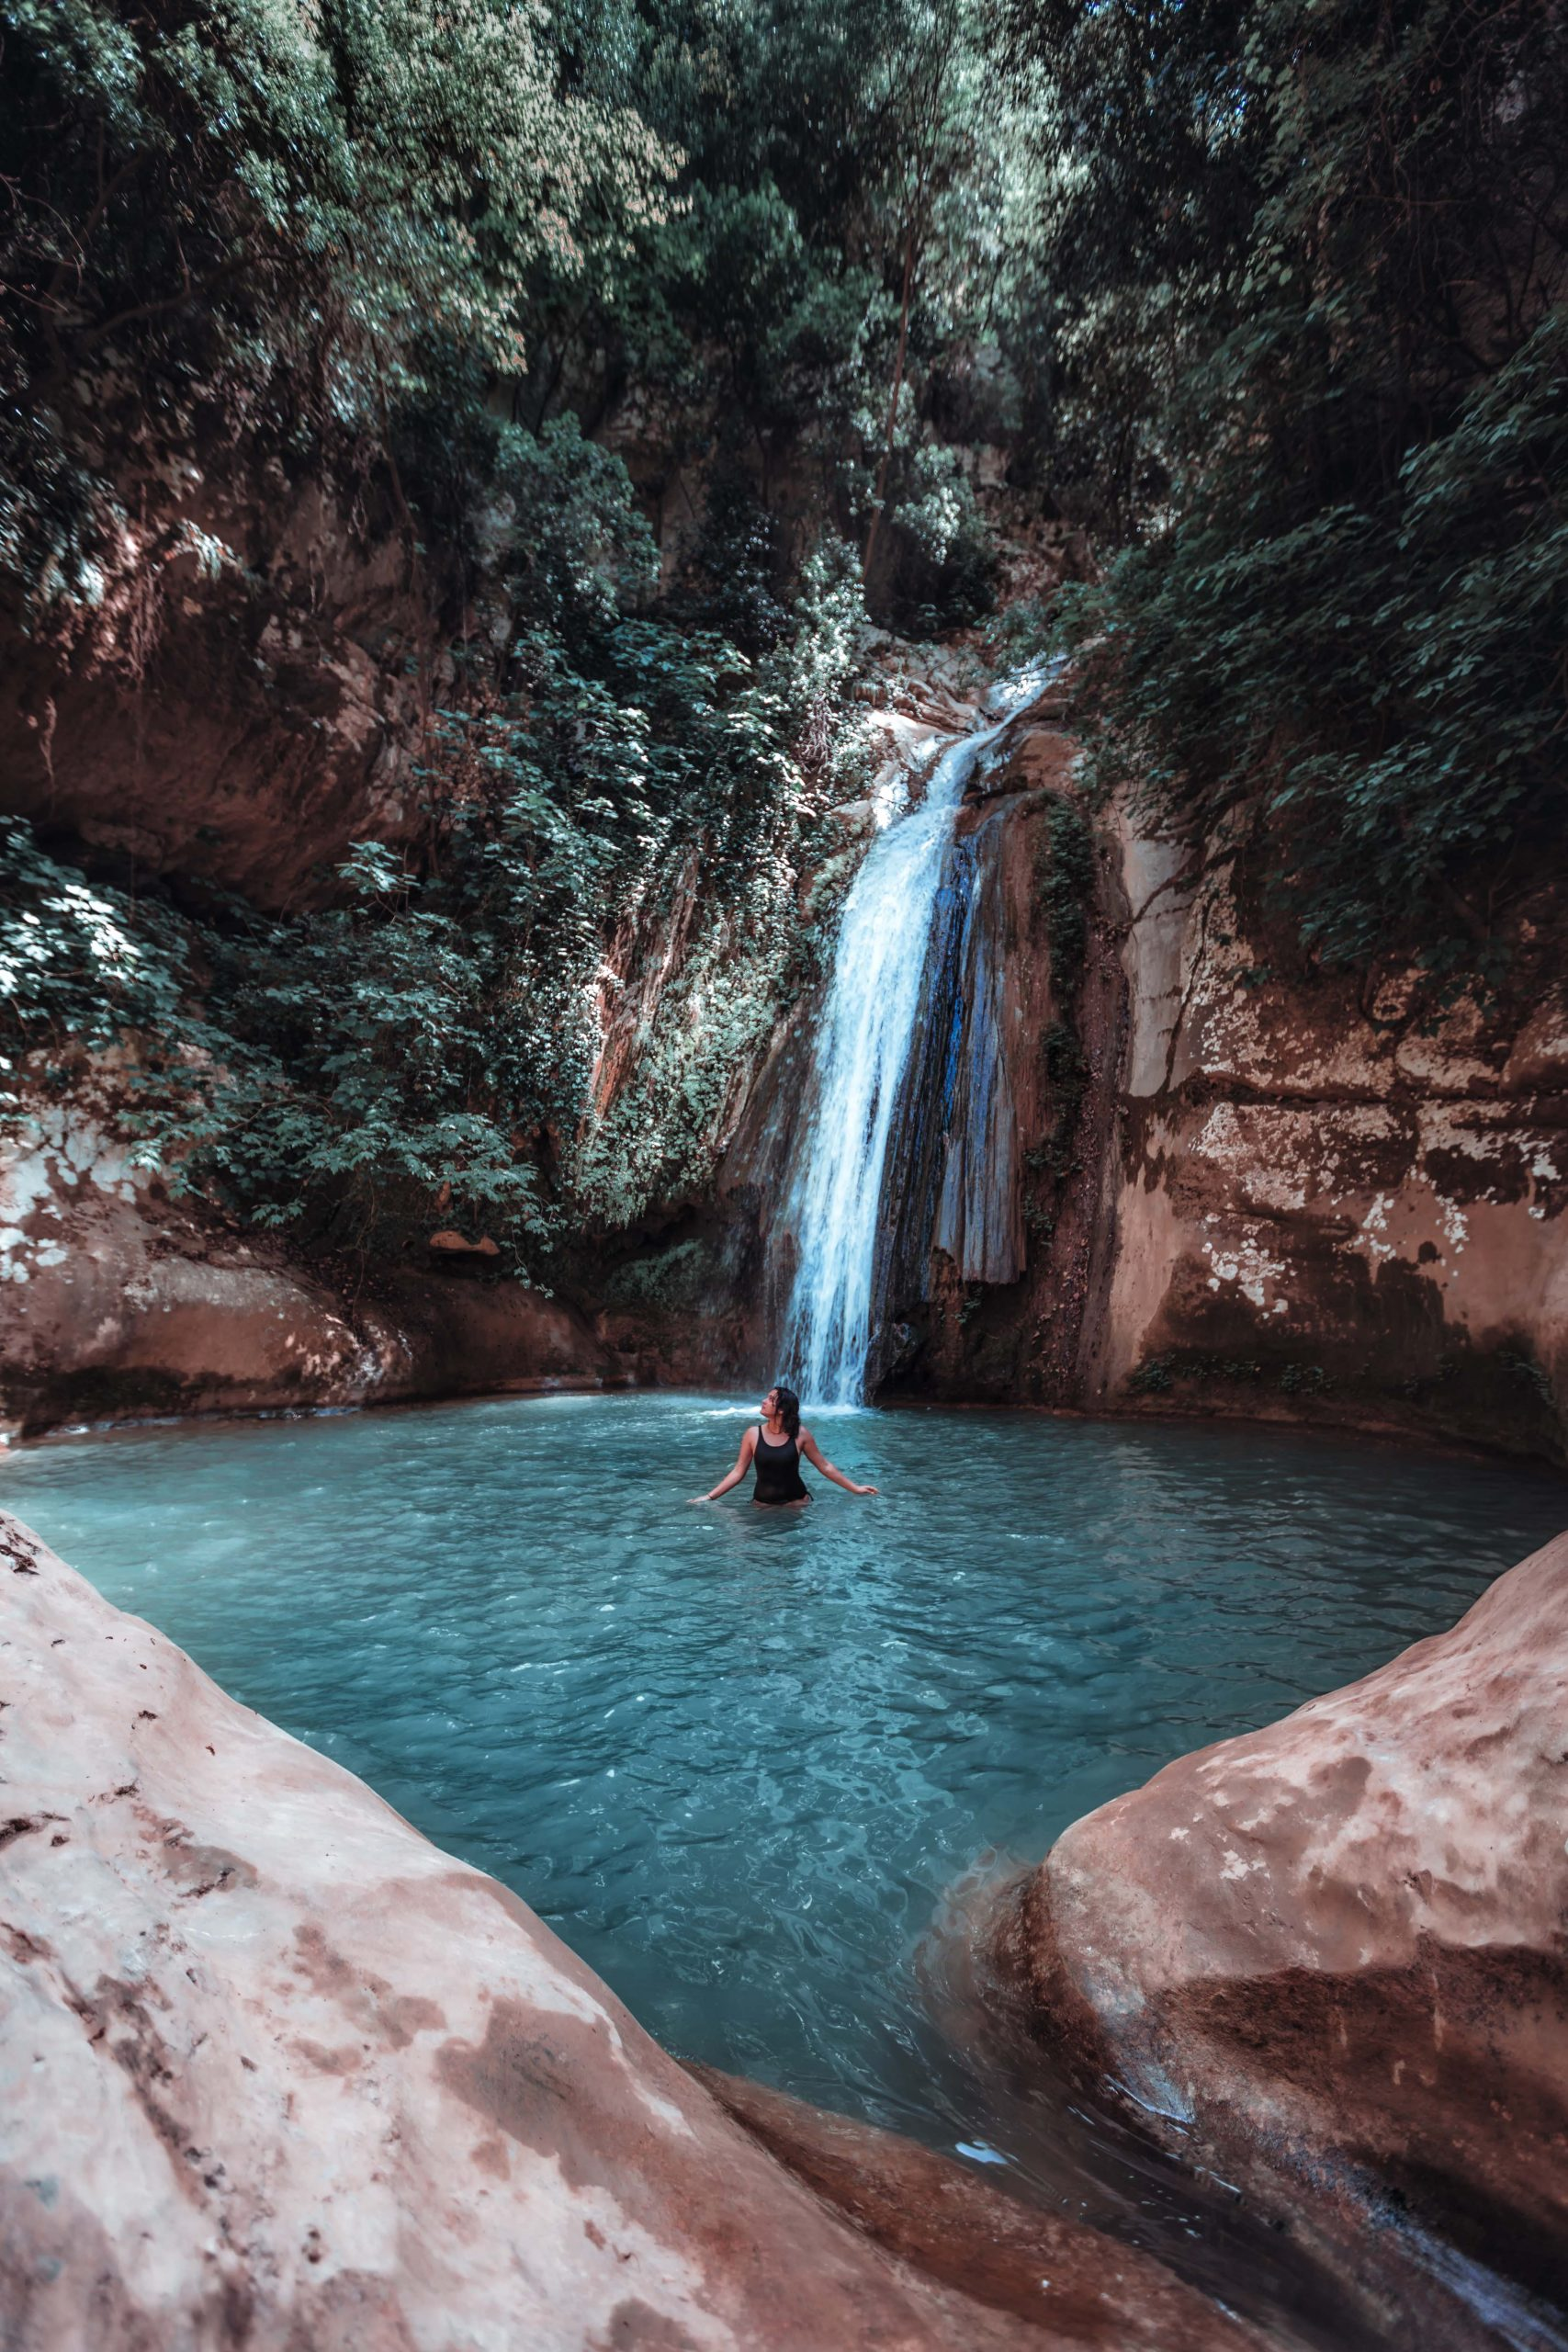 33 Photos to Make You Fall in Love with Lebanon